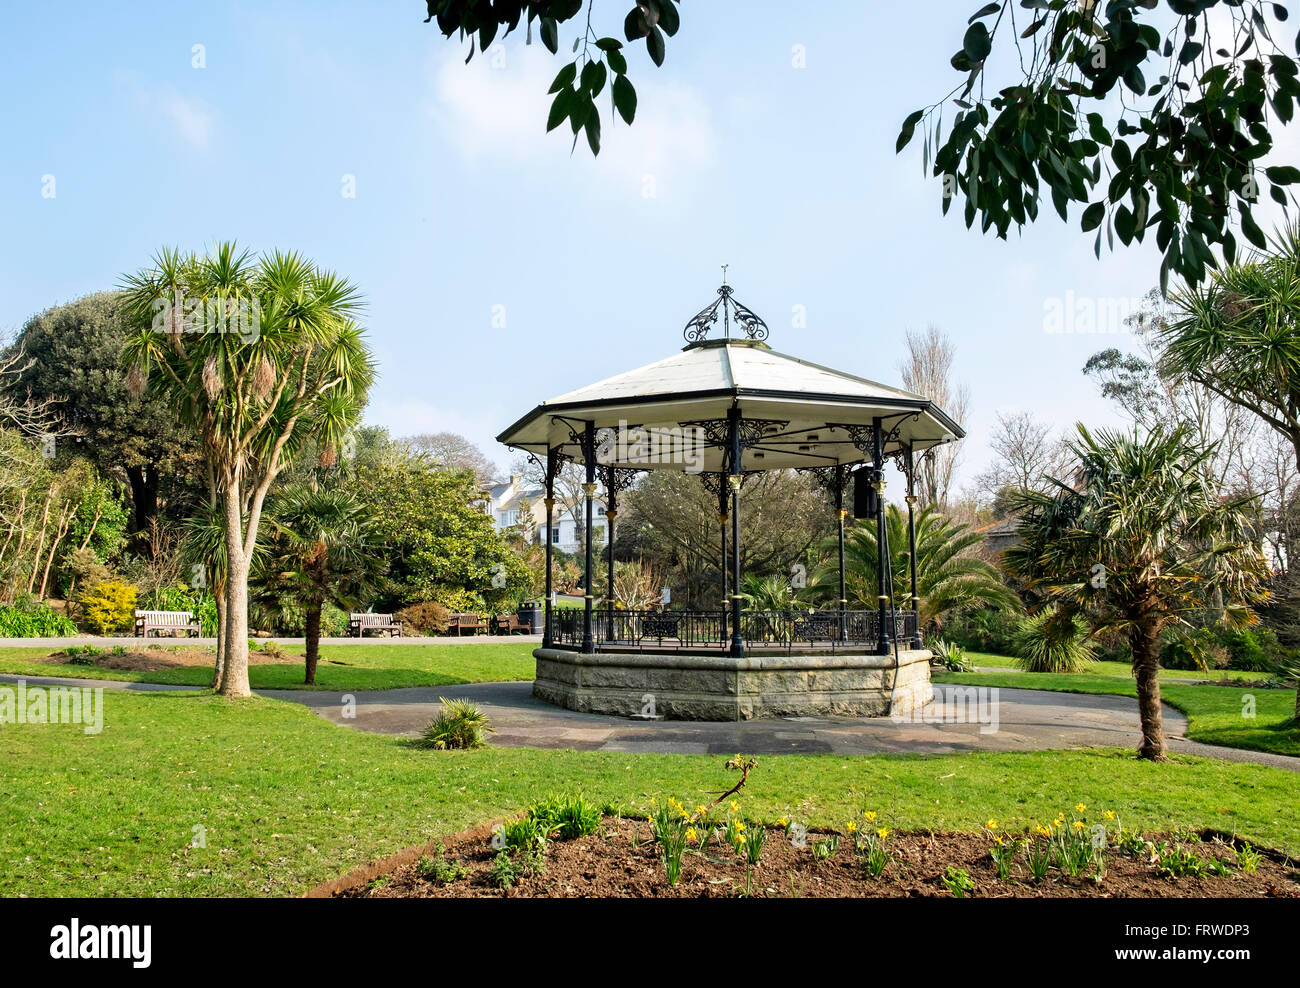 The Bandstand at Morrab gardens in Penzance, Cornwall, UK - Stock Image